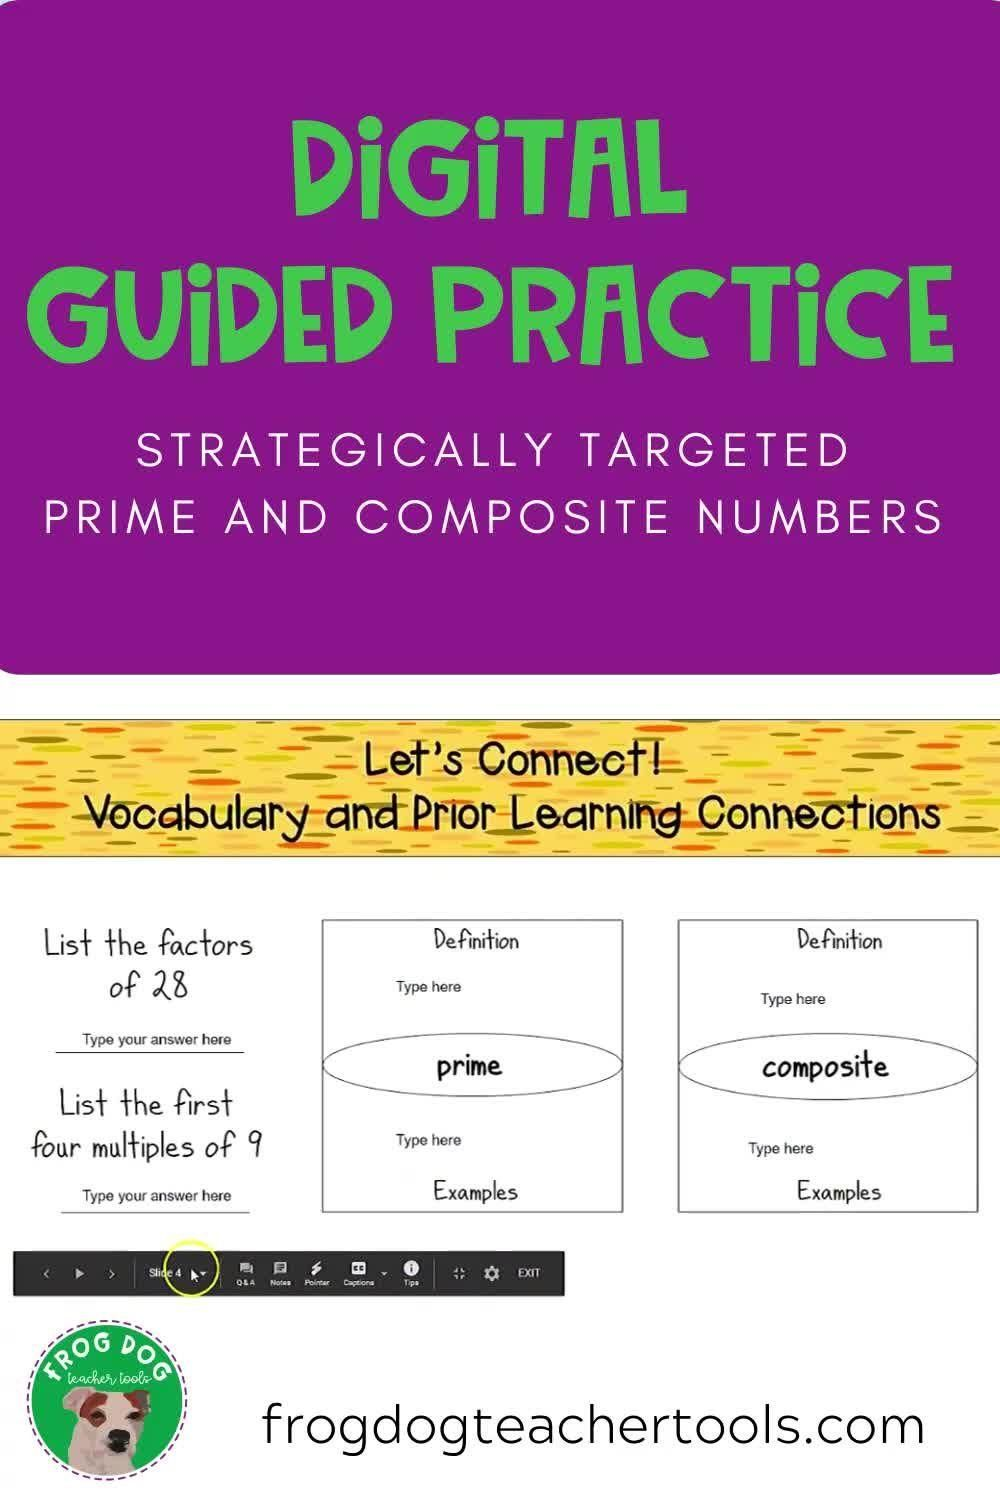 Prime And Composite Digital Guided Practice Activity Video Guided Practice Middle School Math Prime And Composite